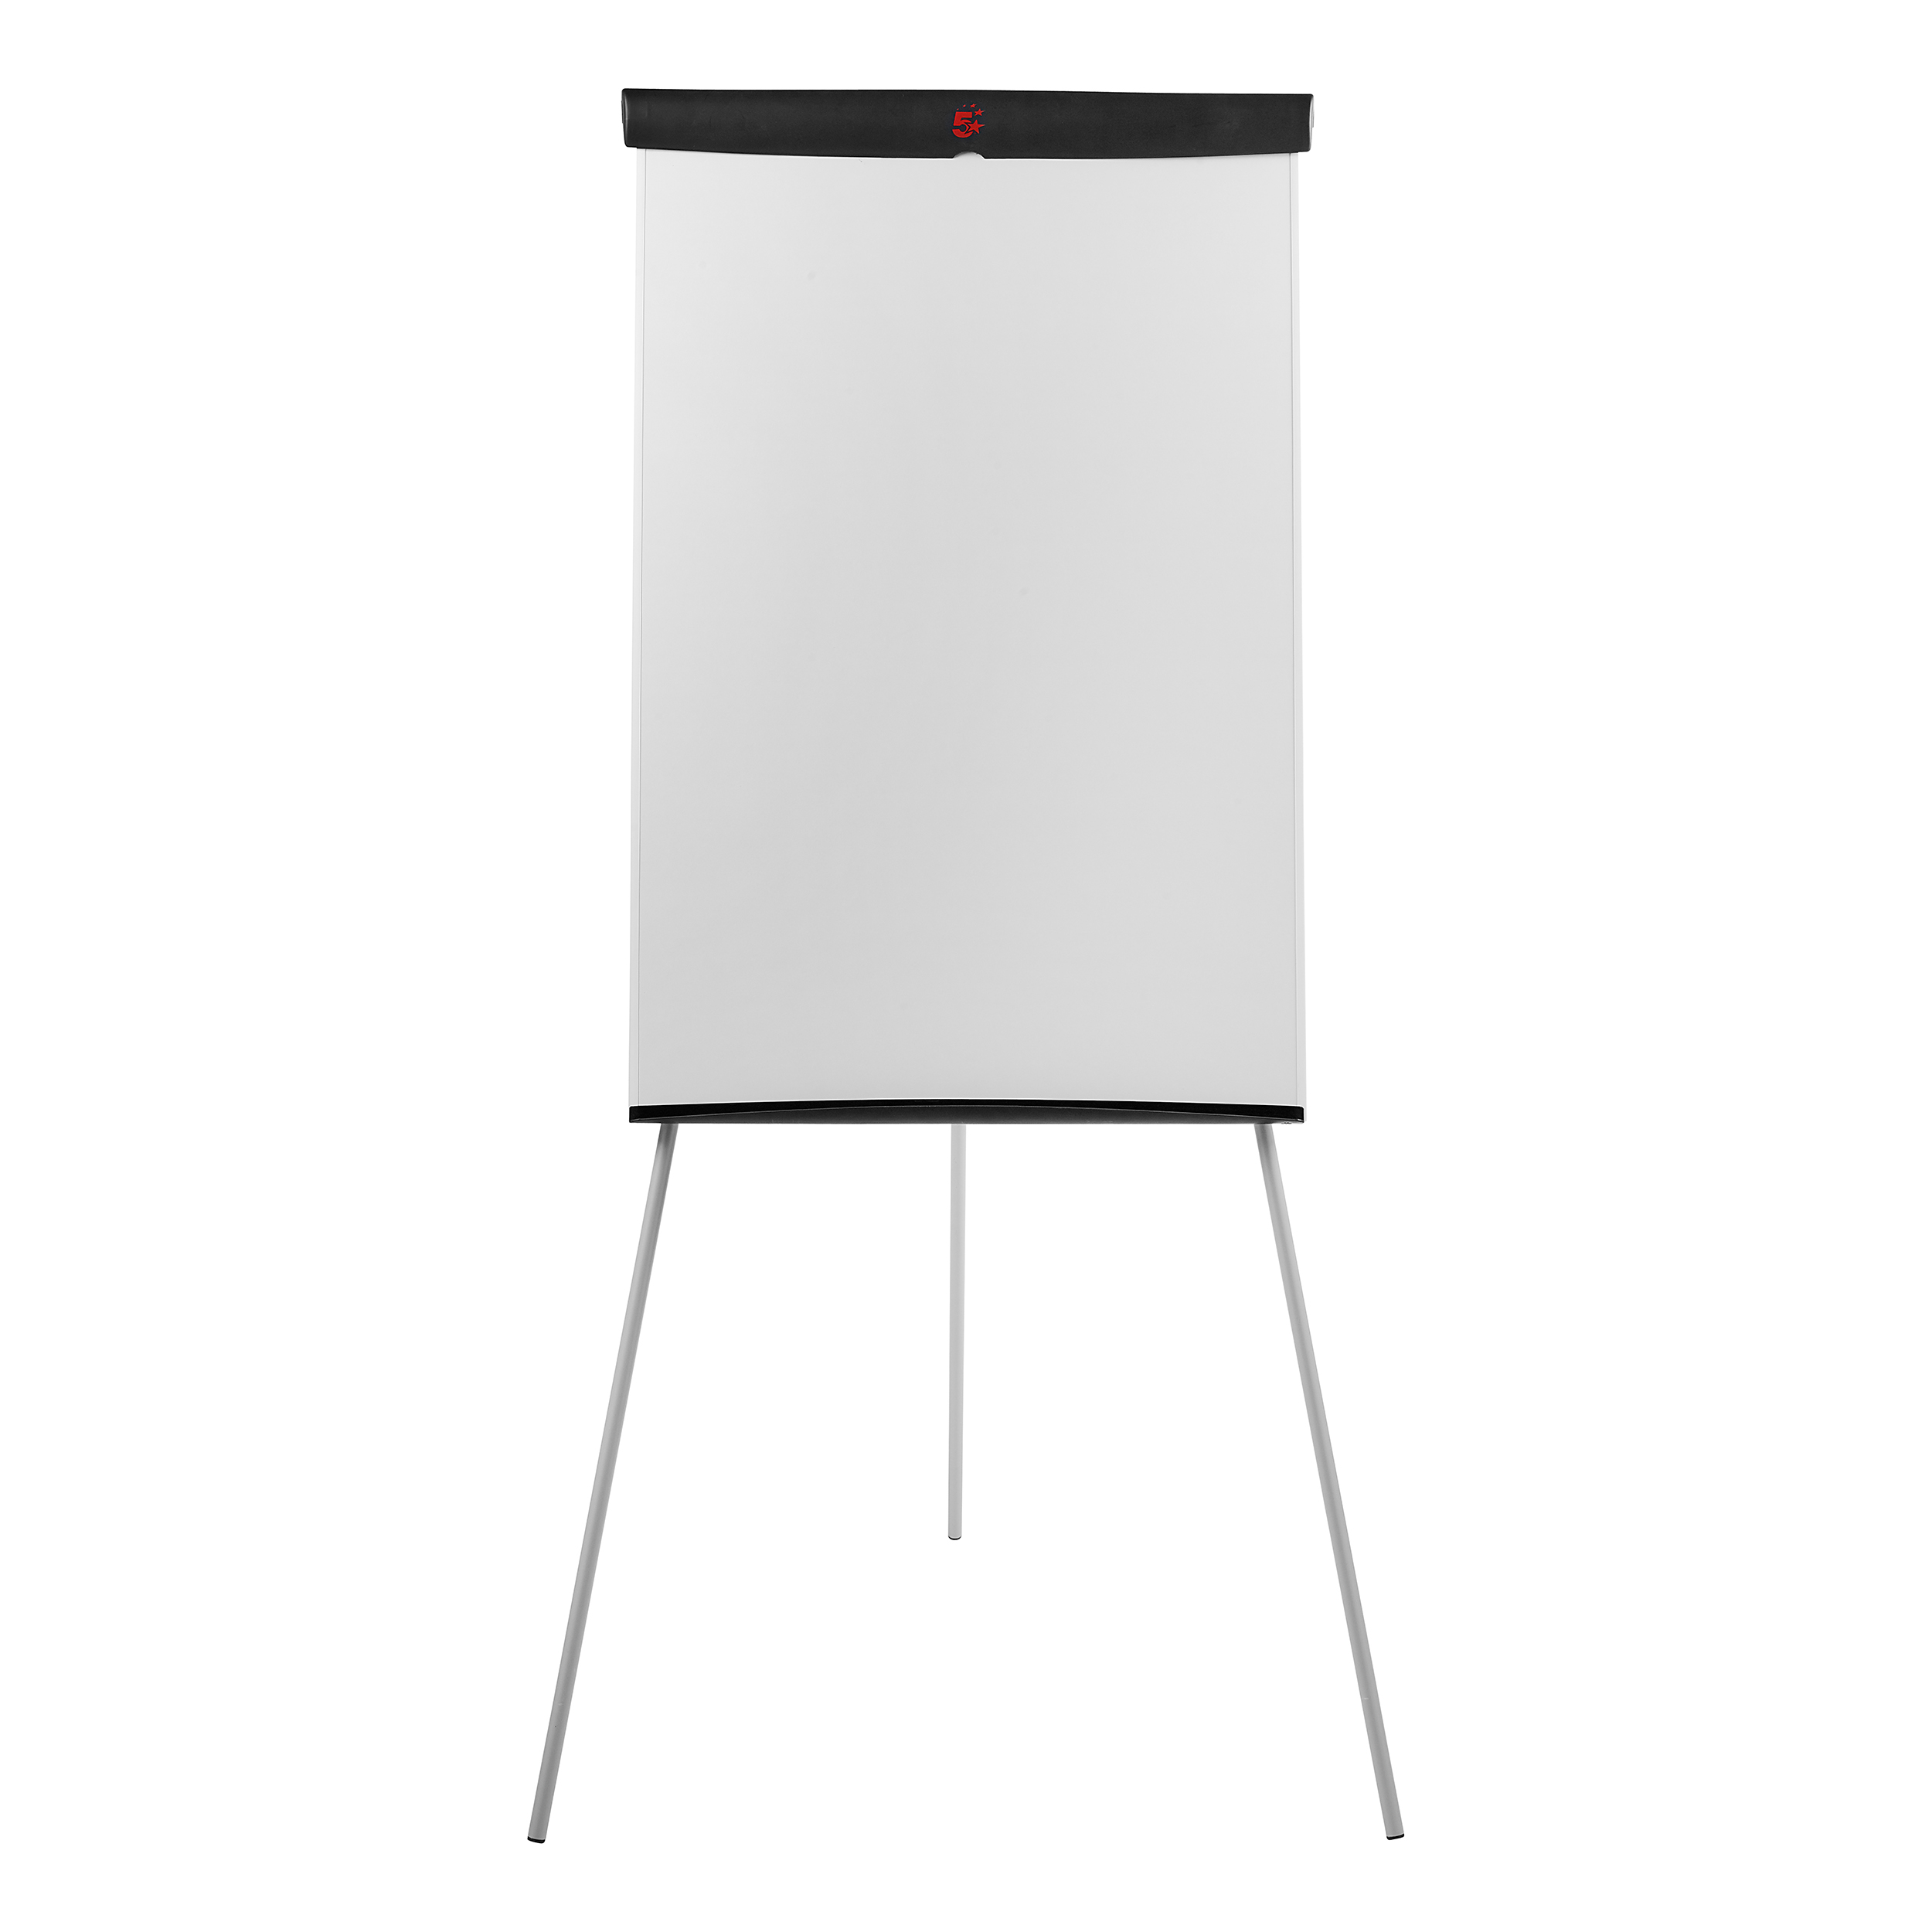 Easels 5 Star Office Flipchart Easel with W670xH990mm Board W700xD82xH1900mm Black Trim